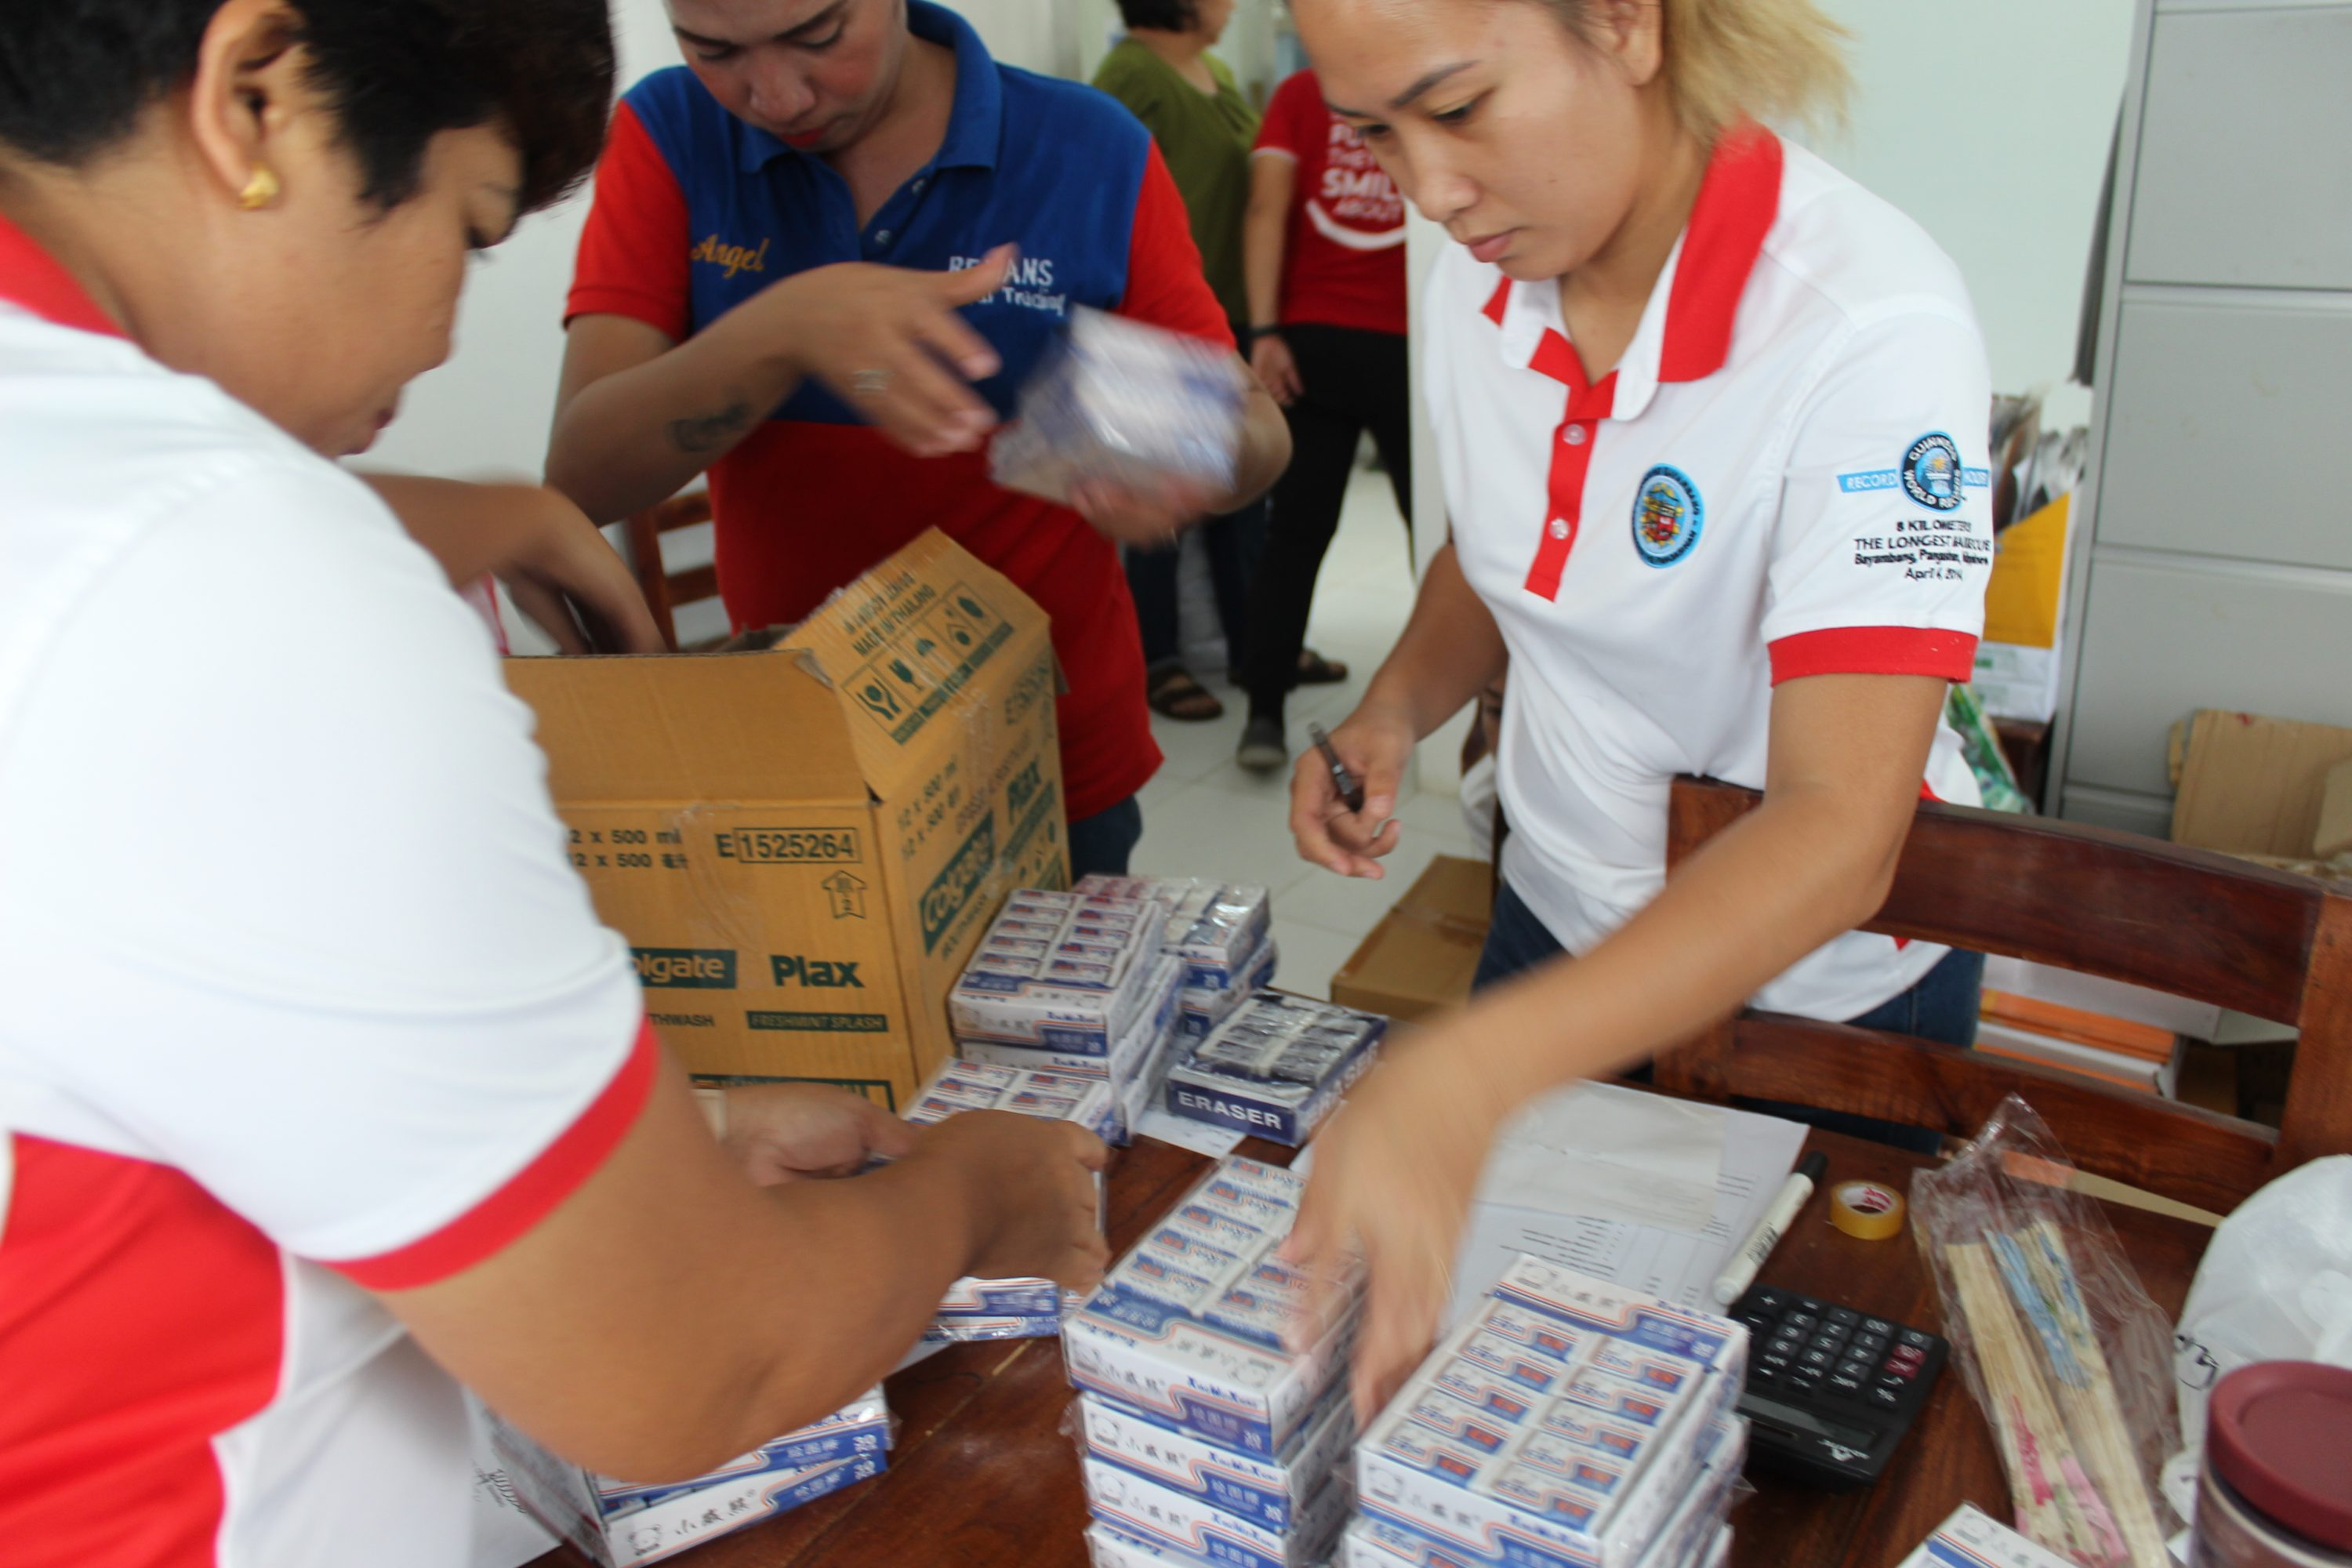 inspection and deliveries of and medical supplies to rhu 2,and 3